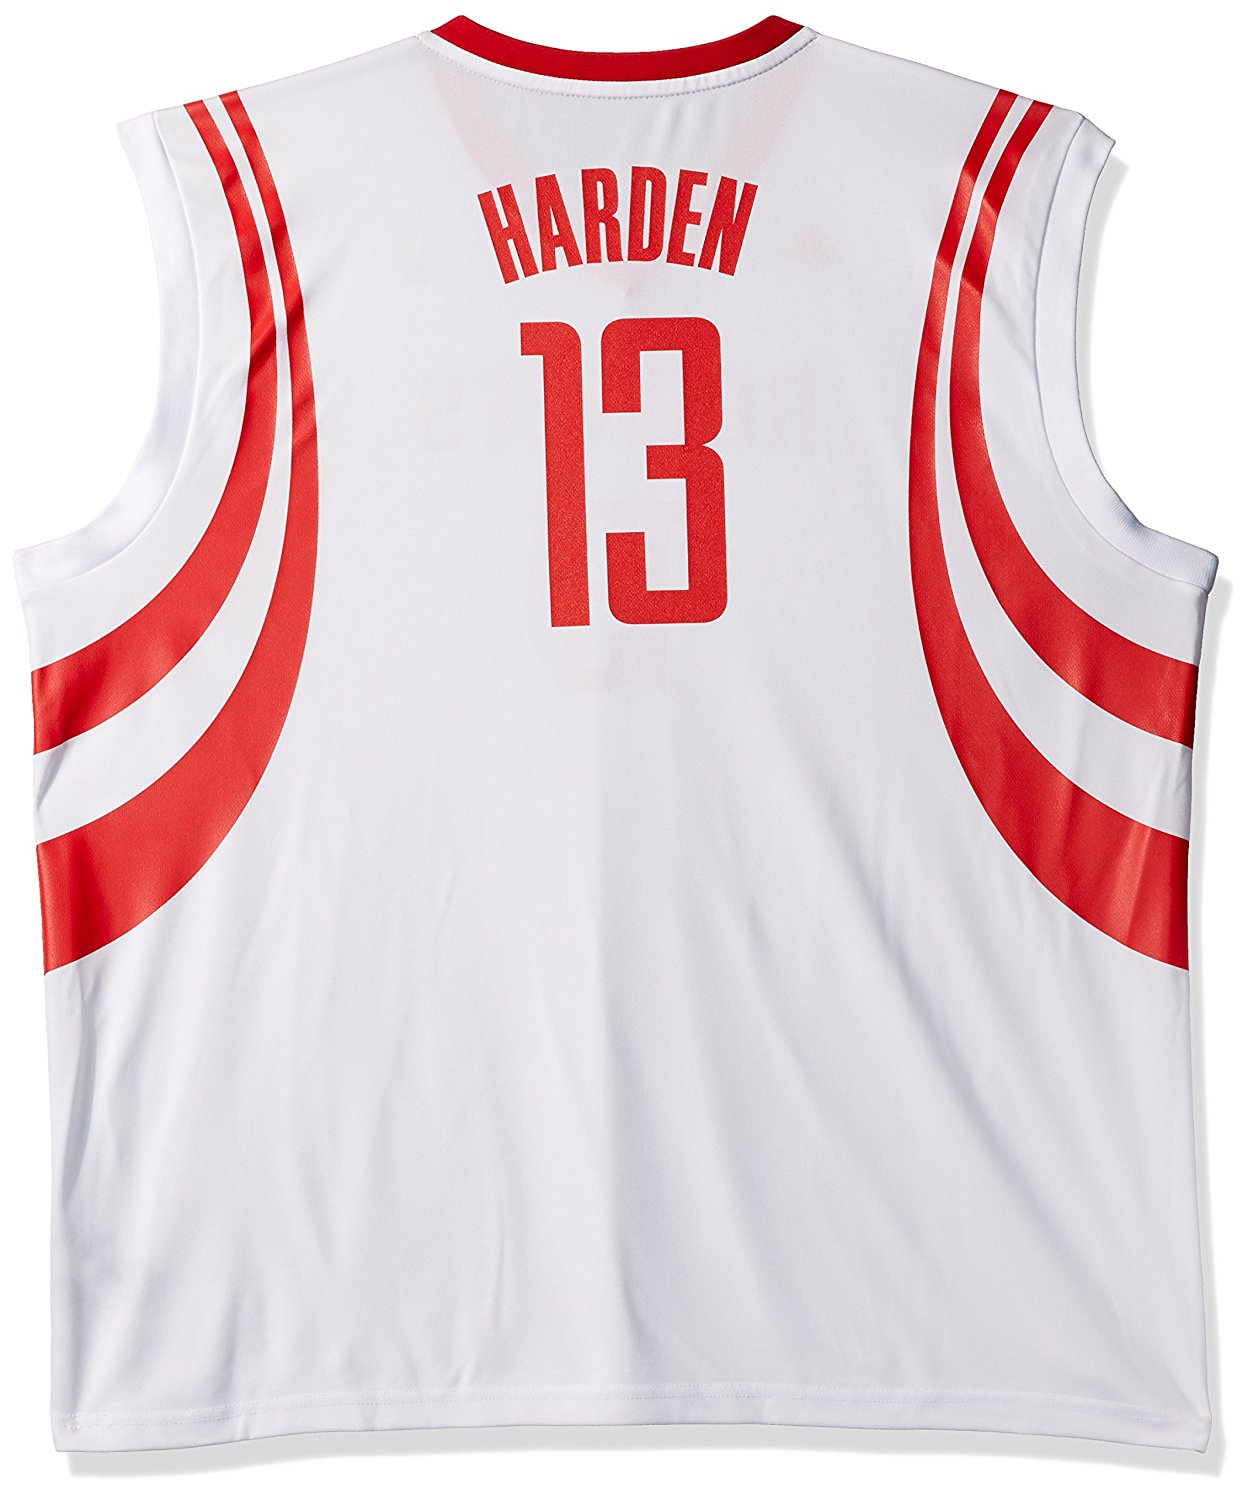 sale retailer e7b87 91e2b Cheap Harden Jersey, find Harden Jersey deals on line at ...